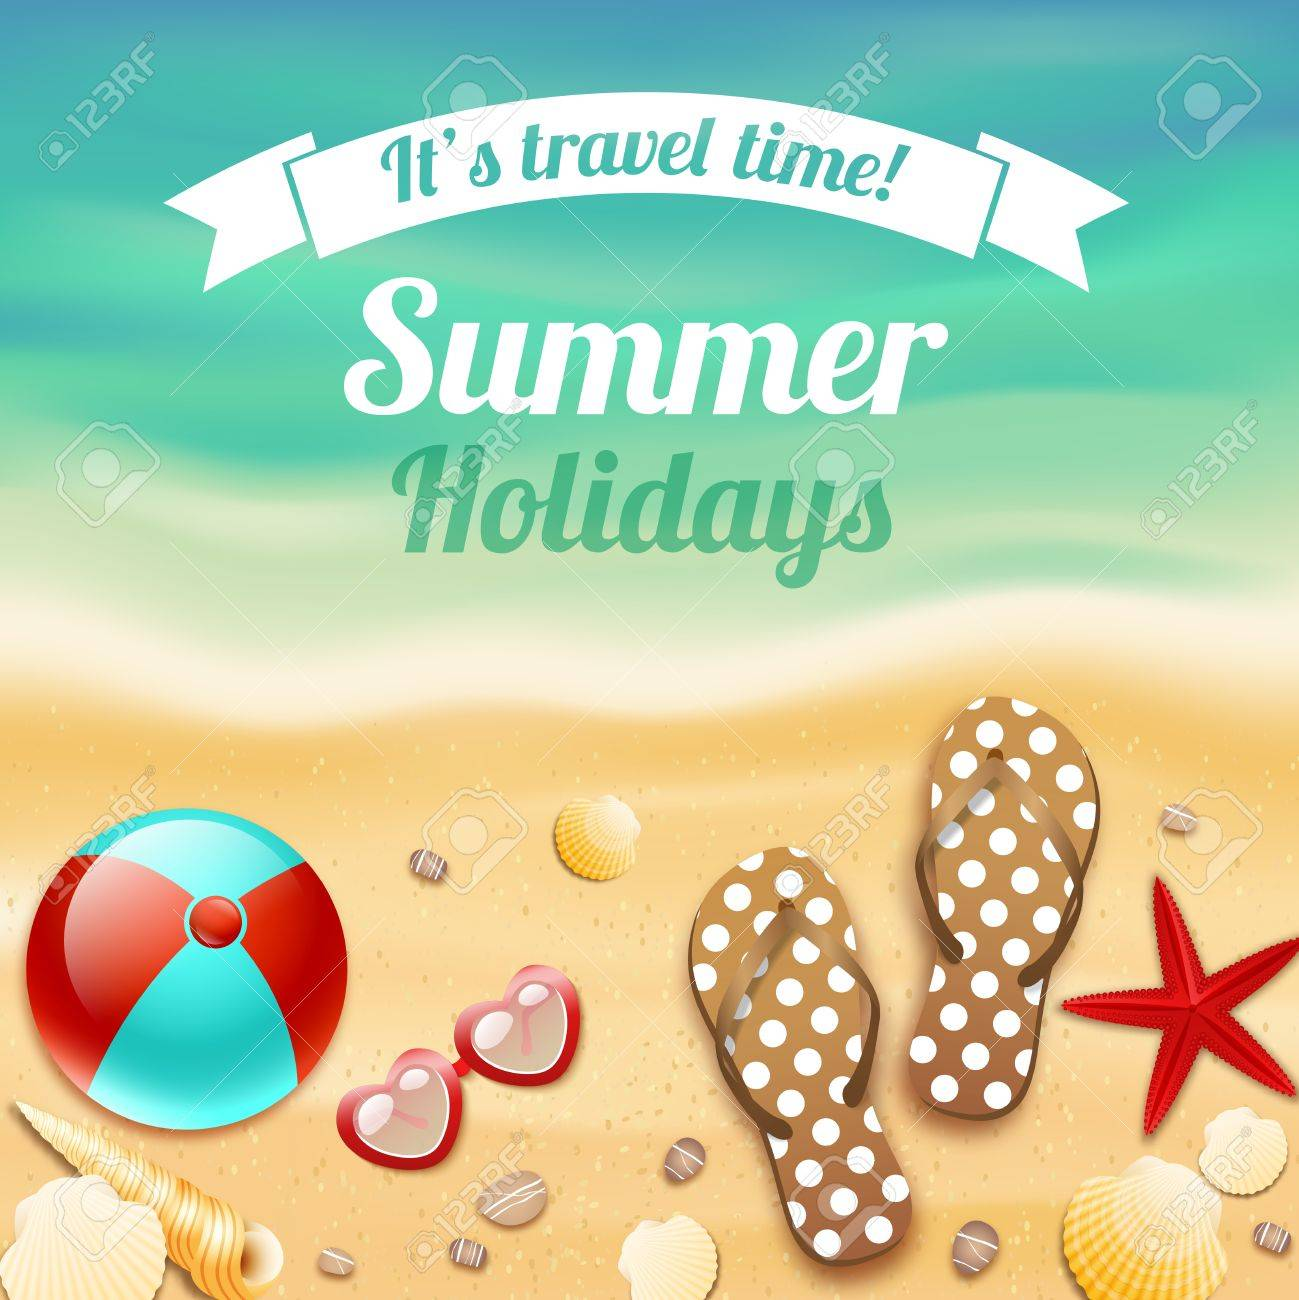 Sandals shoes holidays - Summer Holiday Vacation Travel Background Poster With Beach Accessories Sunglasses Sandals And Starfish Illustration Stock Vector